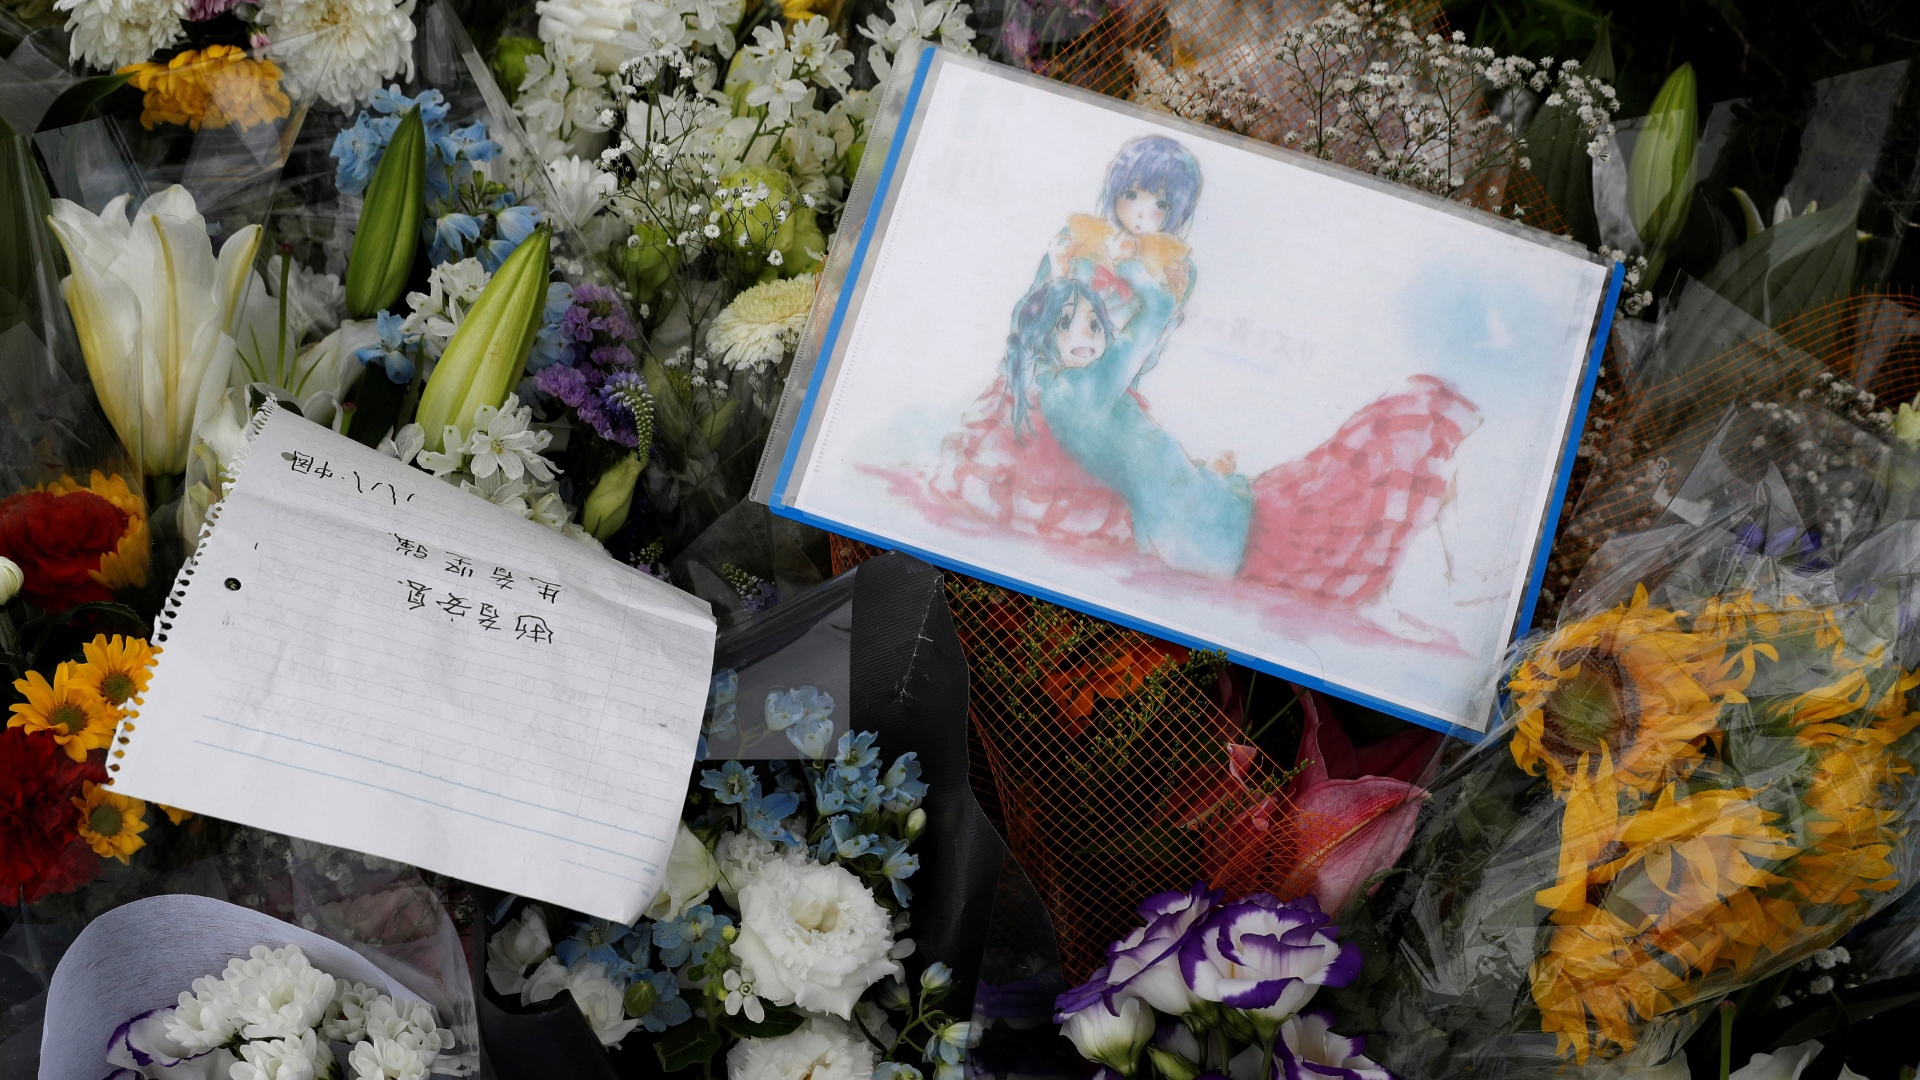 Kyoto Animation fire: Tributes flow for victims as Japan reels from deadly blaze